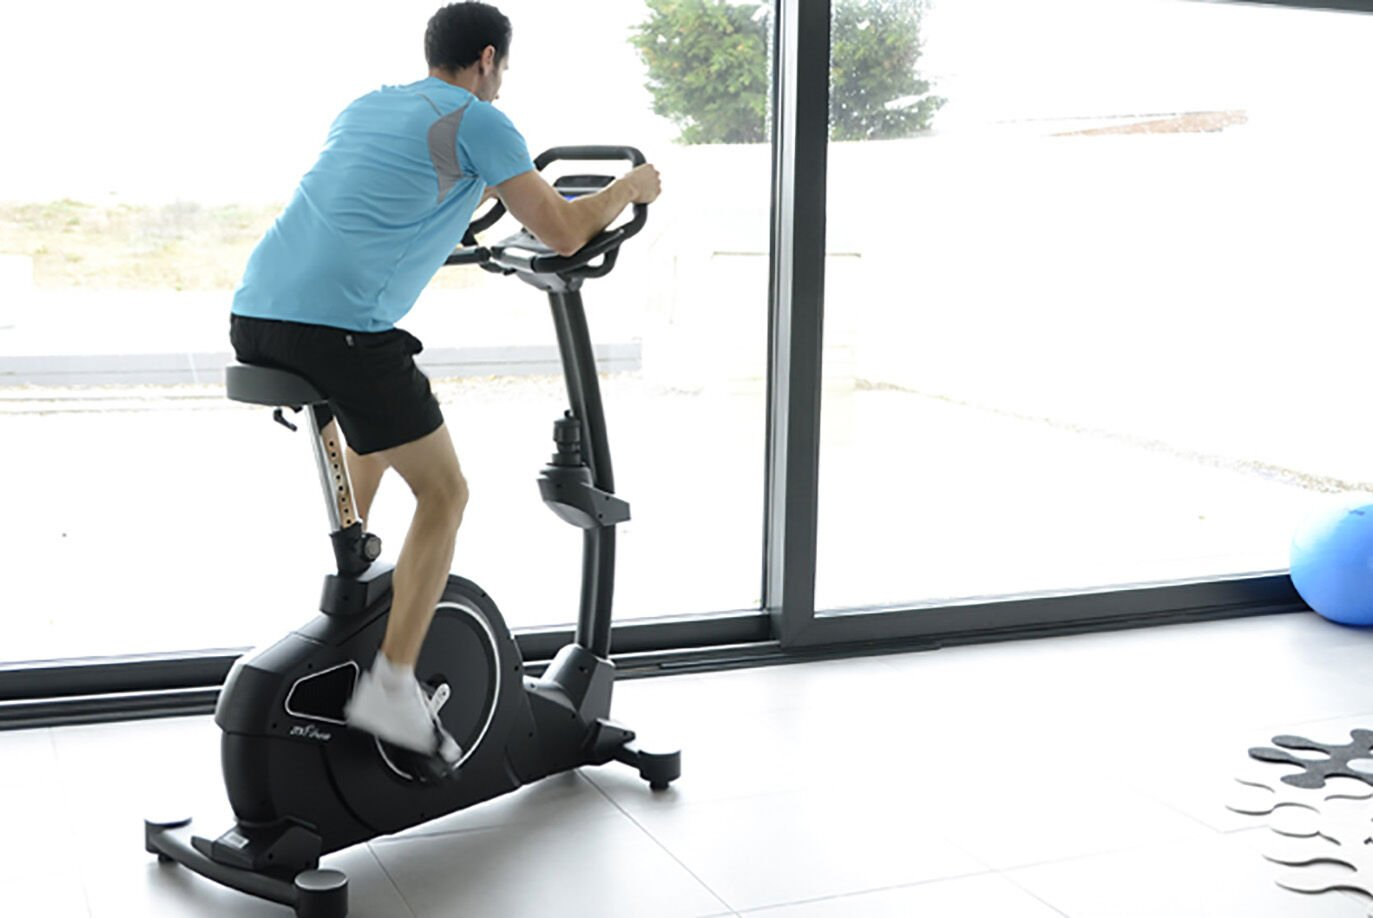 Upright Exercise Bike by JTX Fitness